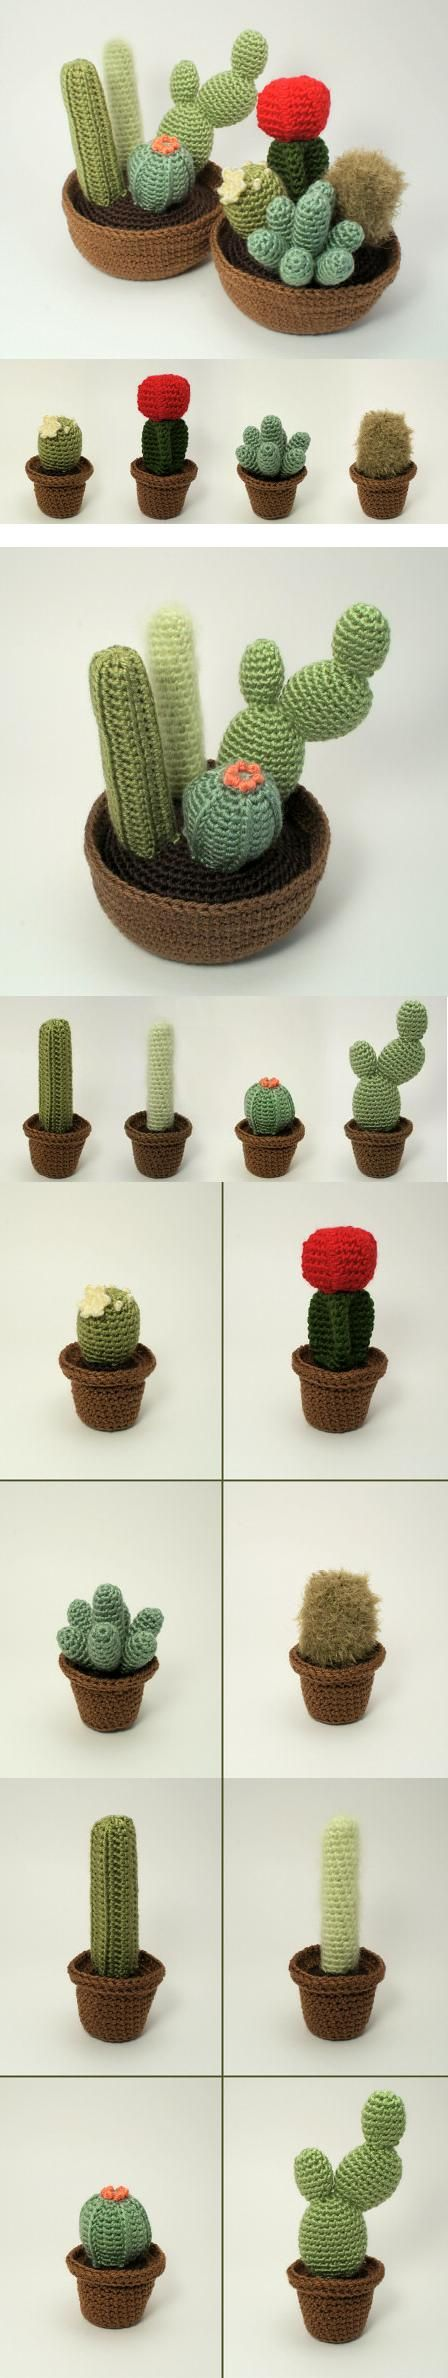 http://www.planetjune.com/blog/cactus-collection-crochet-patterns/ Hermosos…